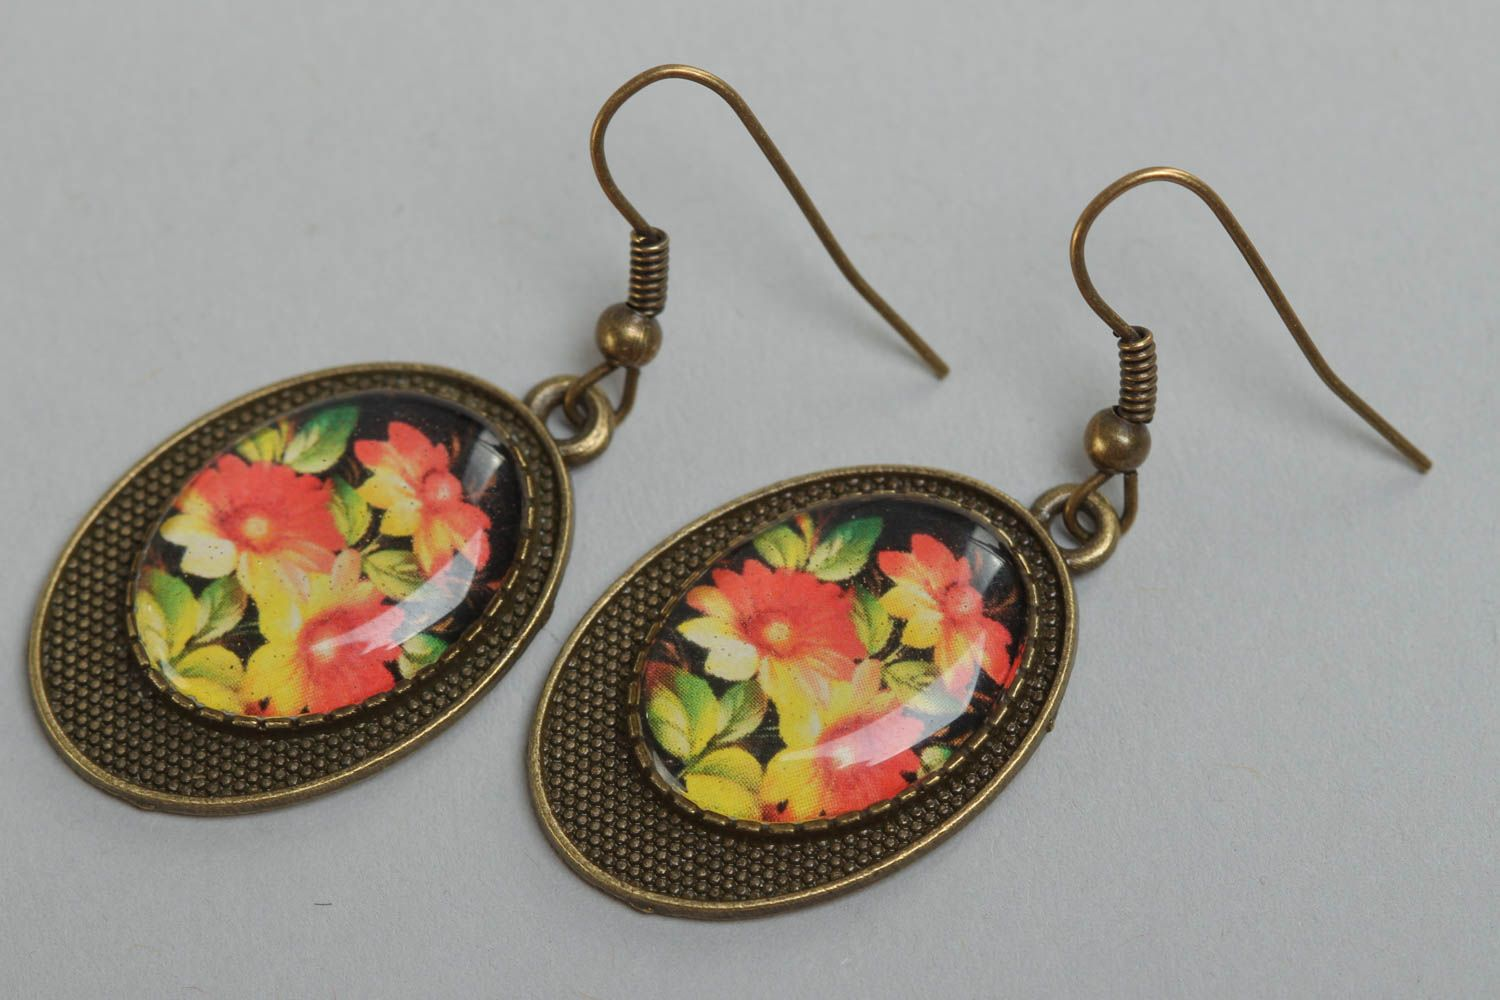 Handmade beautiful vintage earrings with glass glaze and with flowers print photo 2